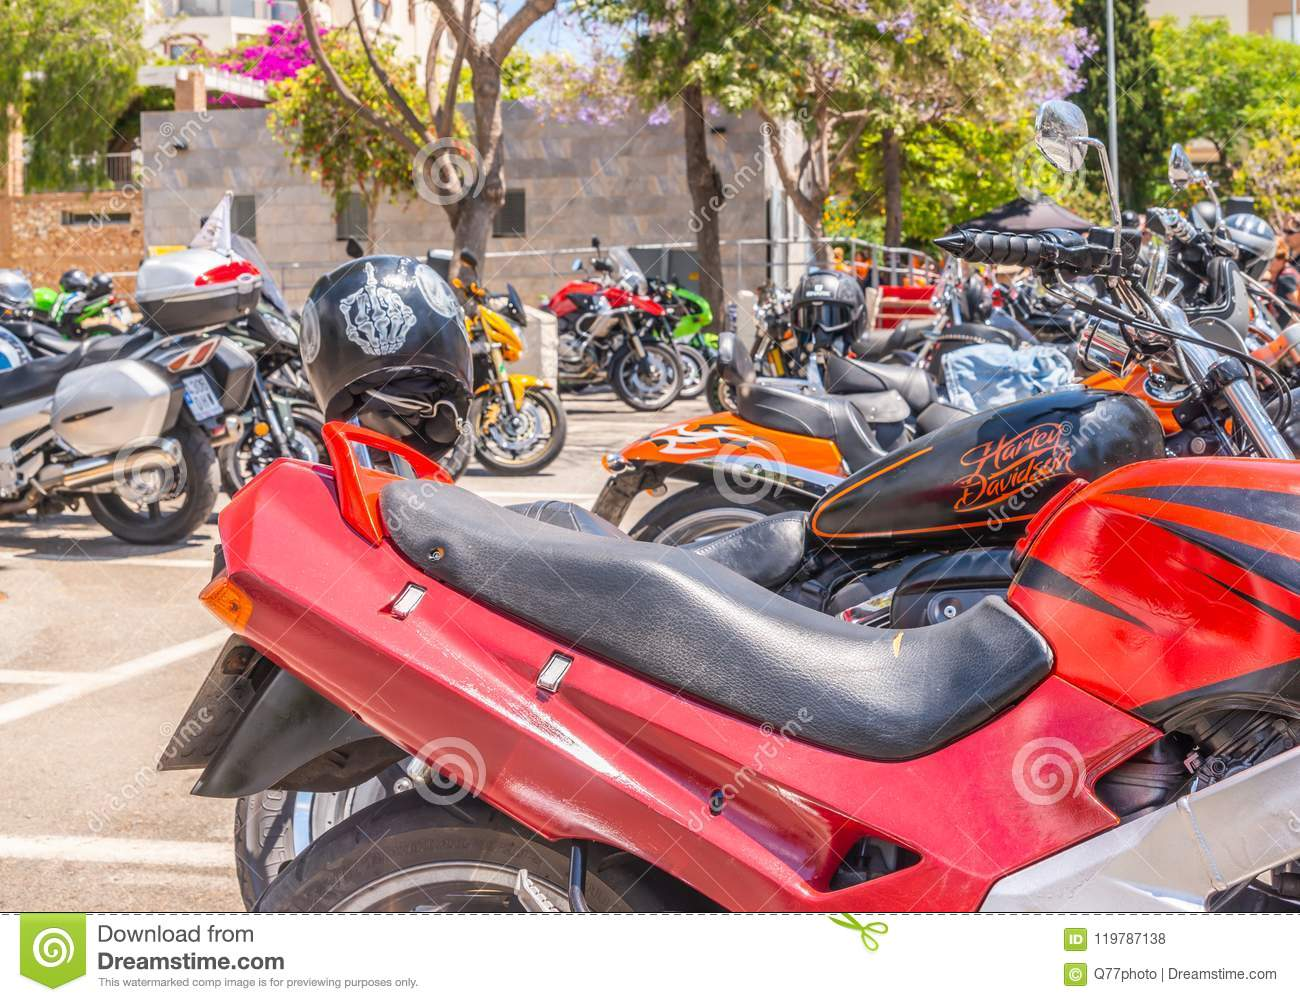 NERJA, SPAIN - JUNE 10, 2018 motorcycle rally in the famous Andalusian town of Nerja